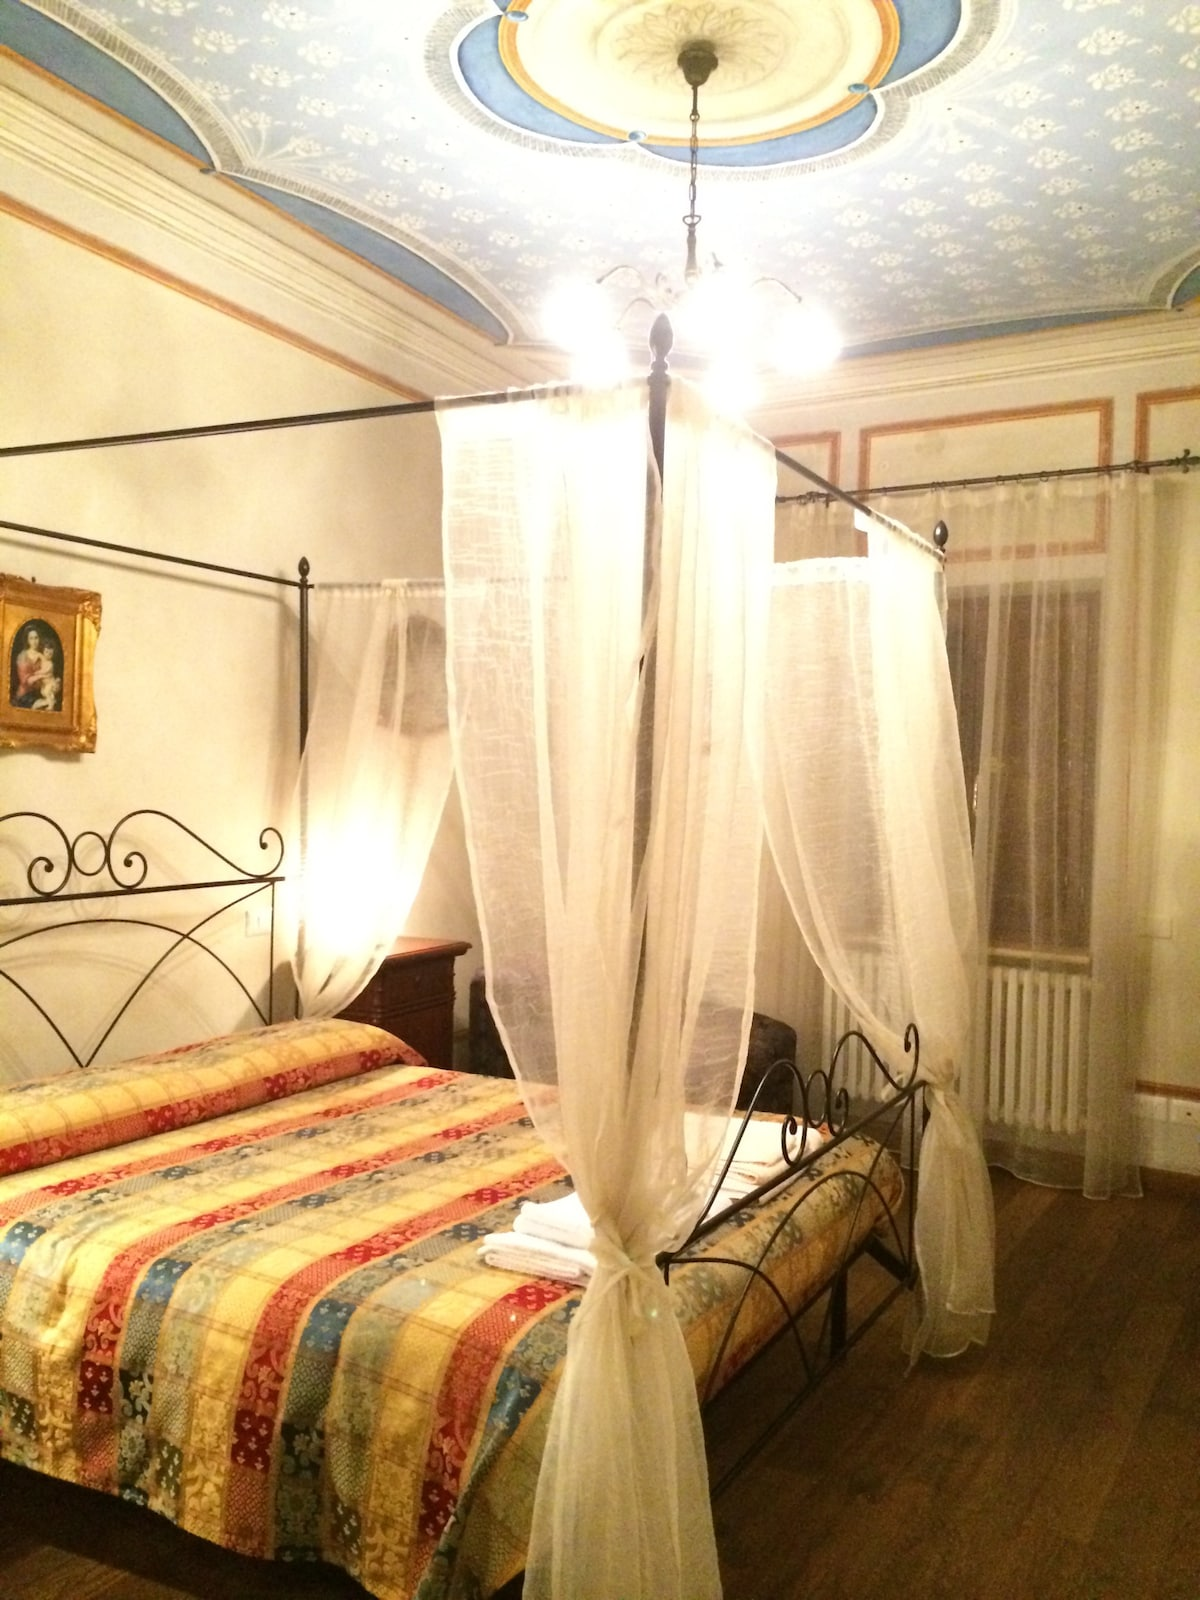 1st bedroom with wonderful canopy bed